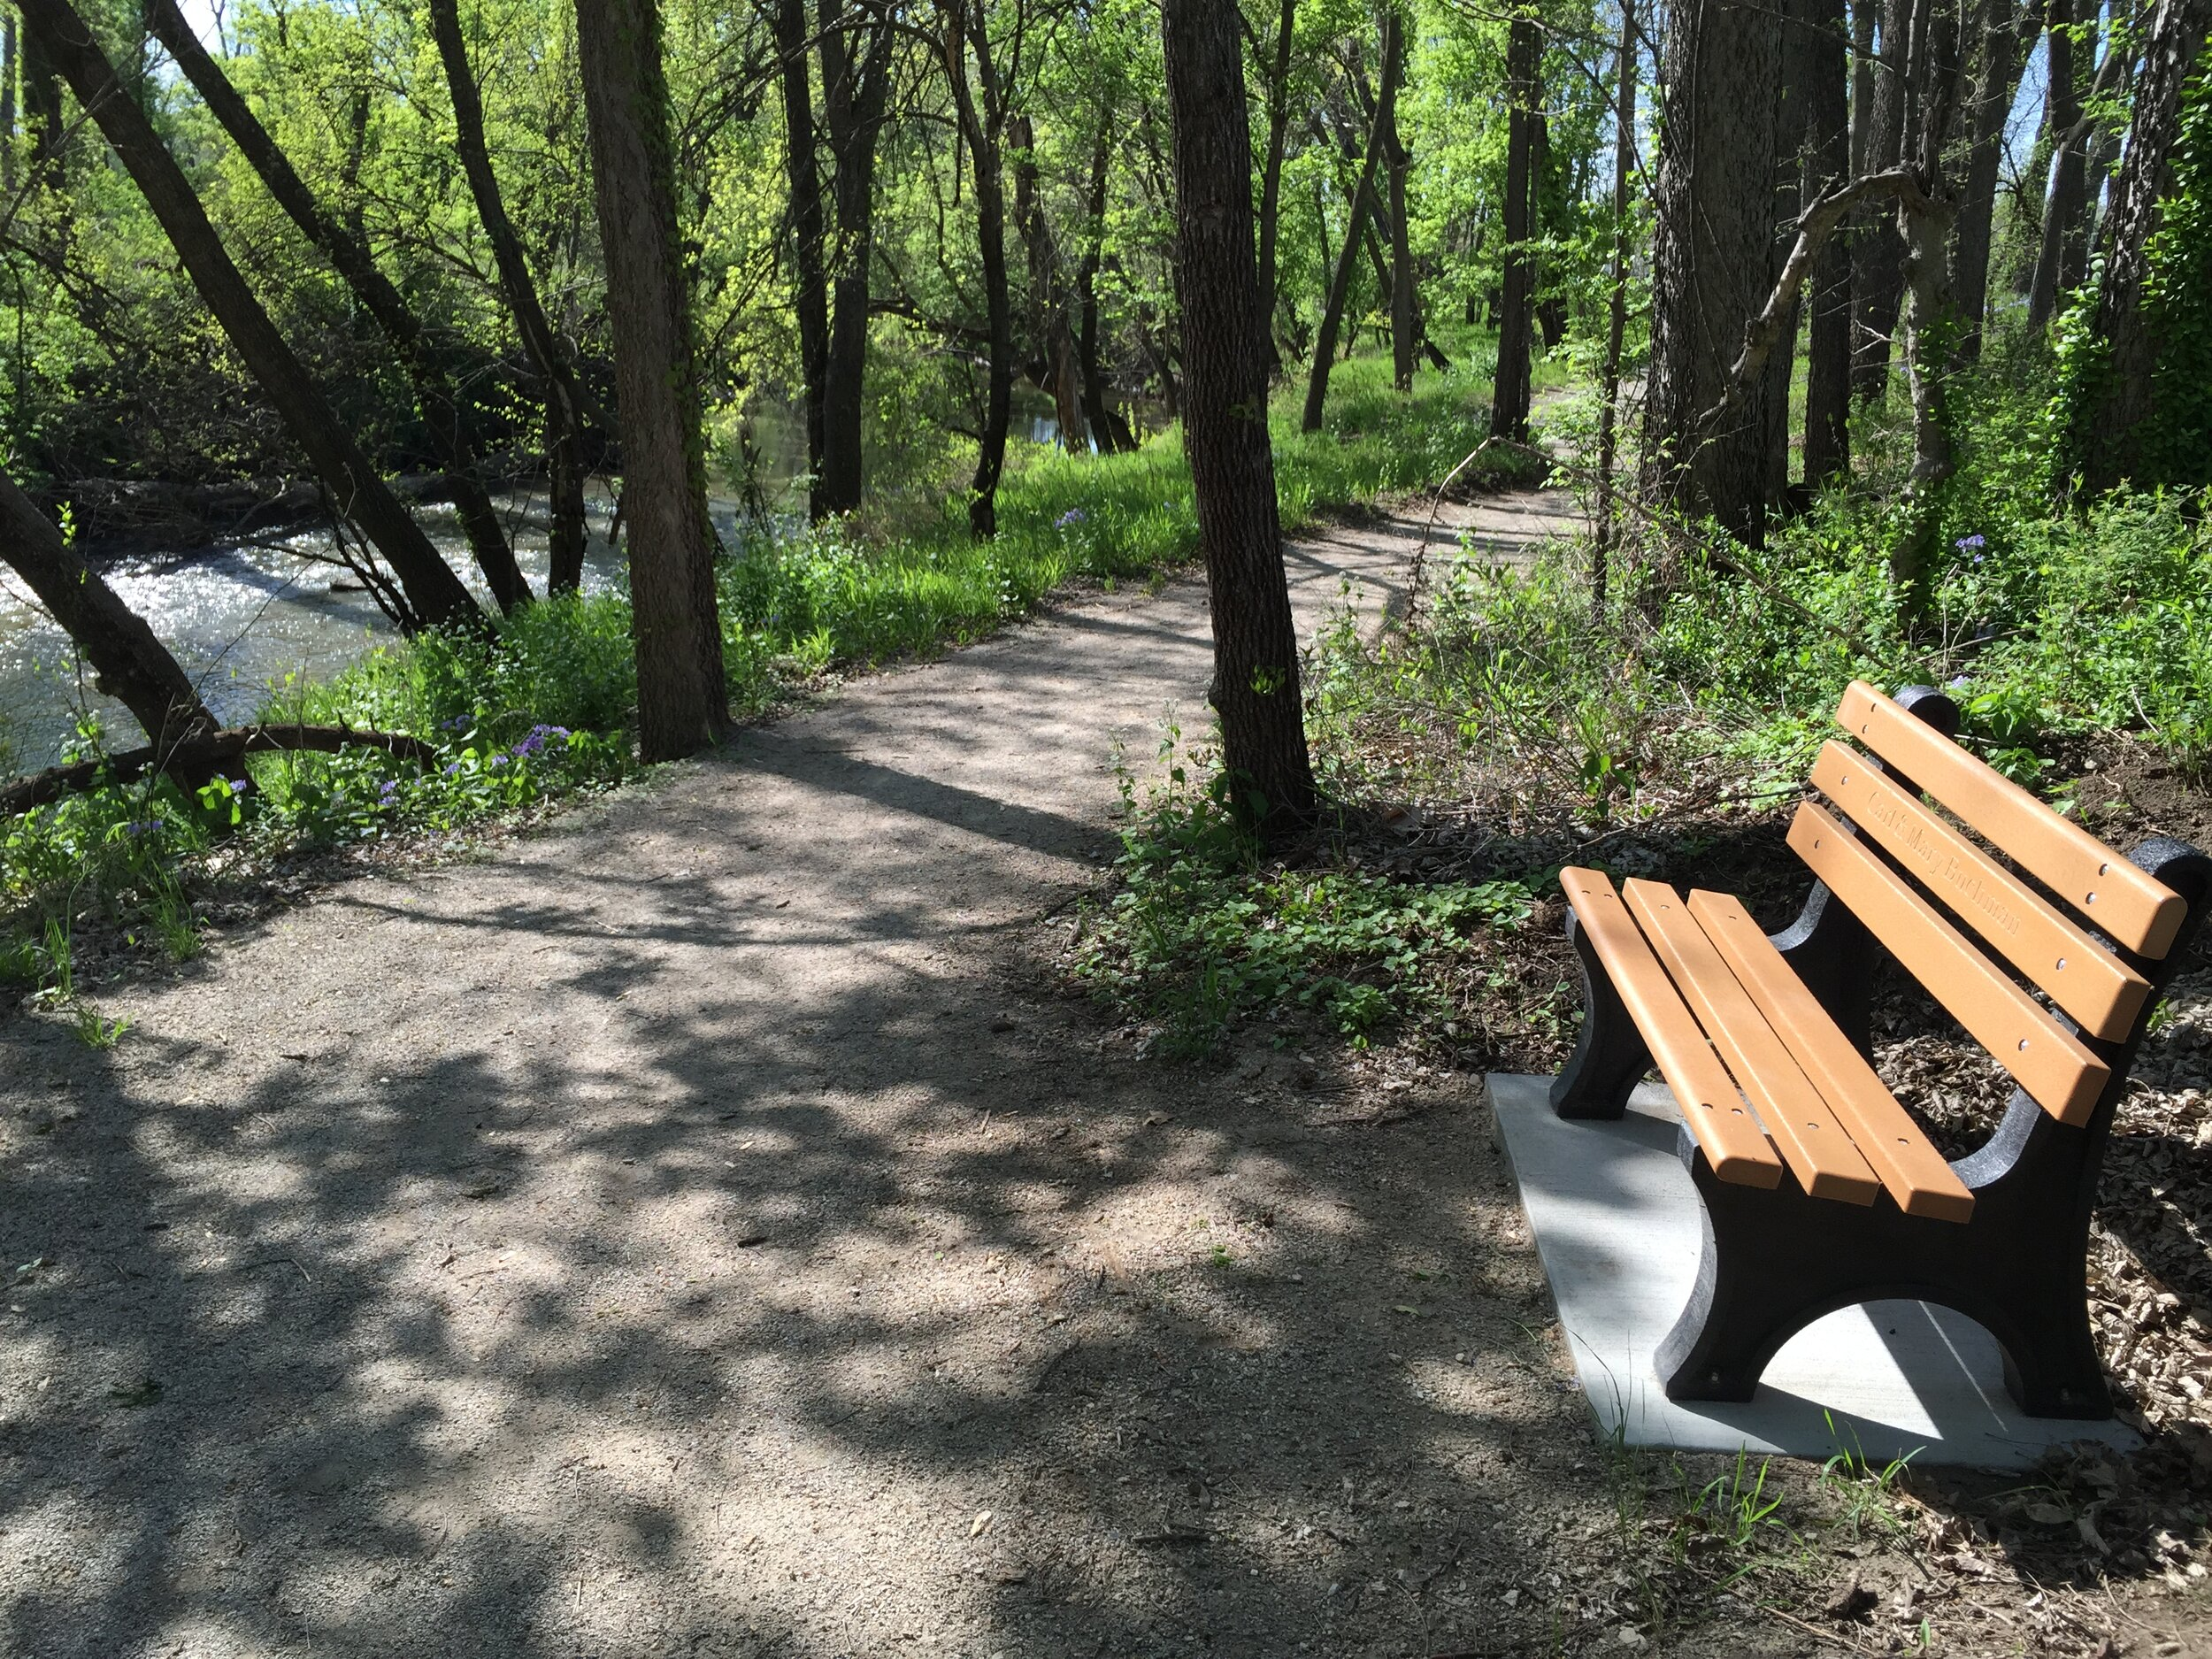 Sponsored benches provide places to relax and enjoy the scenery.